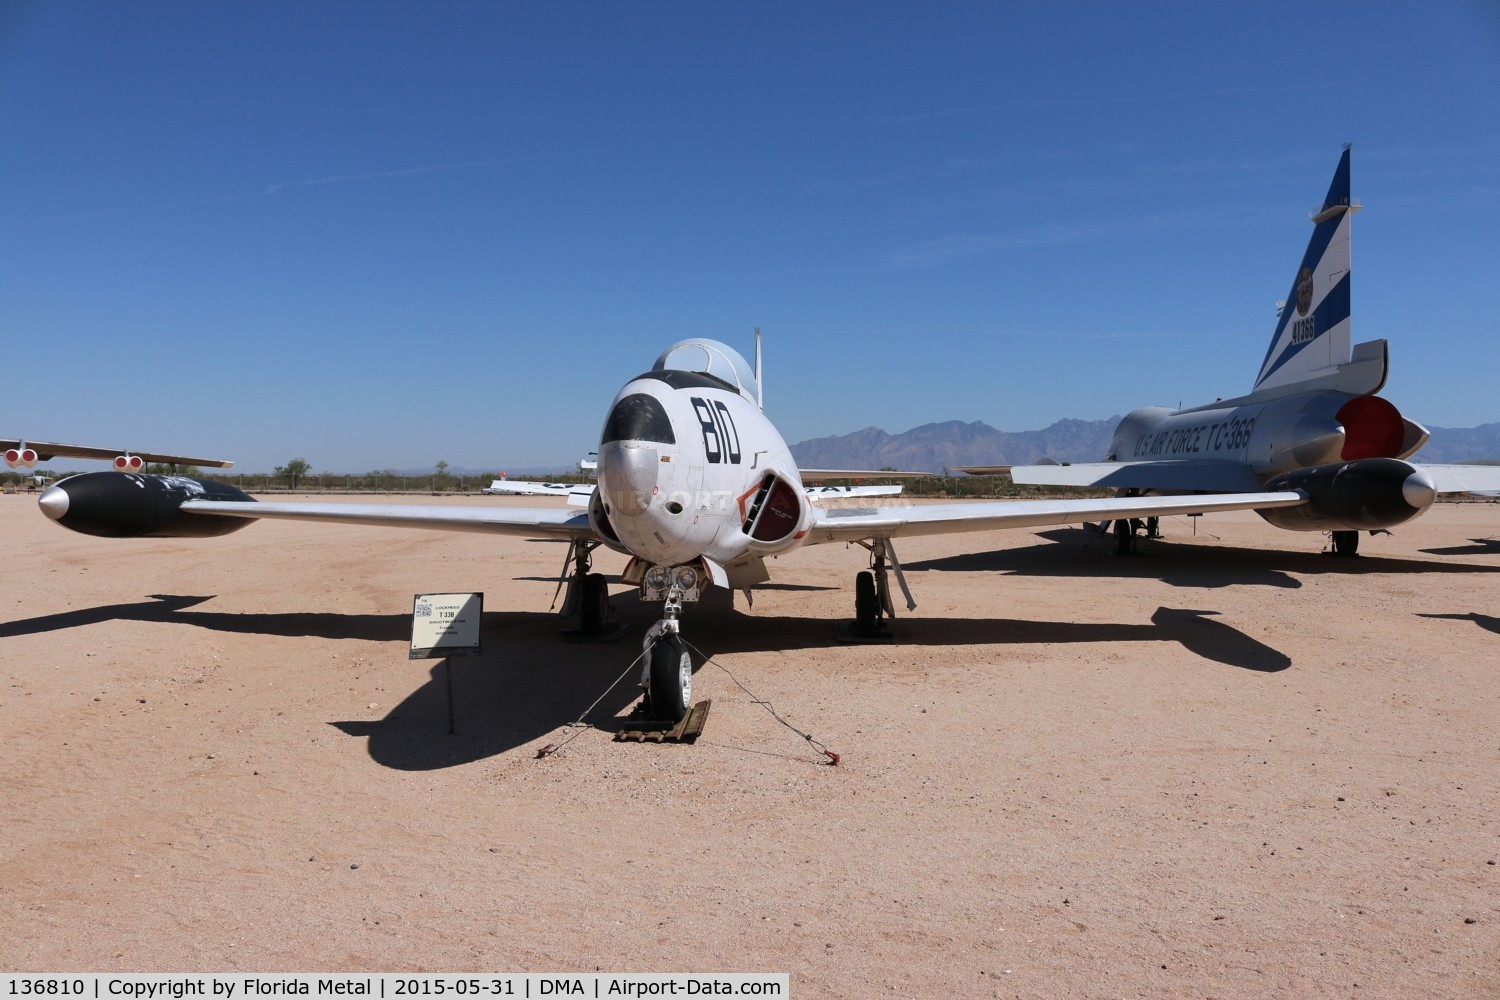 136810, Lockheed T-33B (TV-2 Seastar) C/N 580-7914, TV-2 Seastar